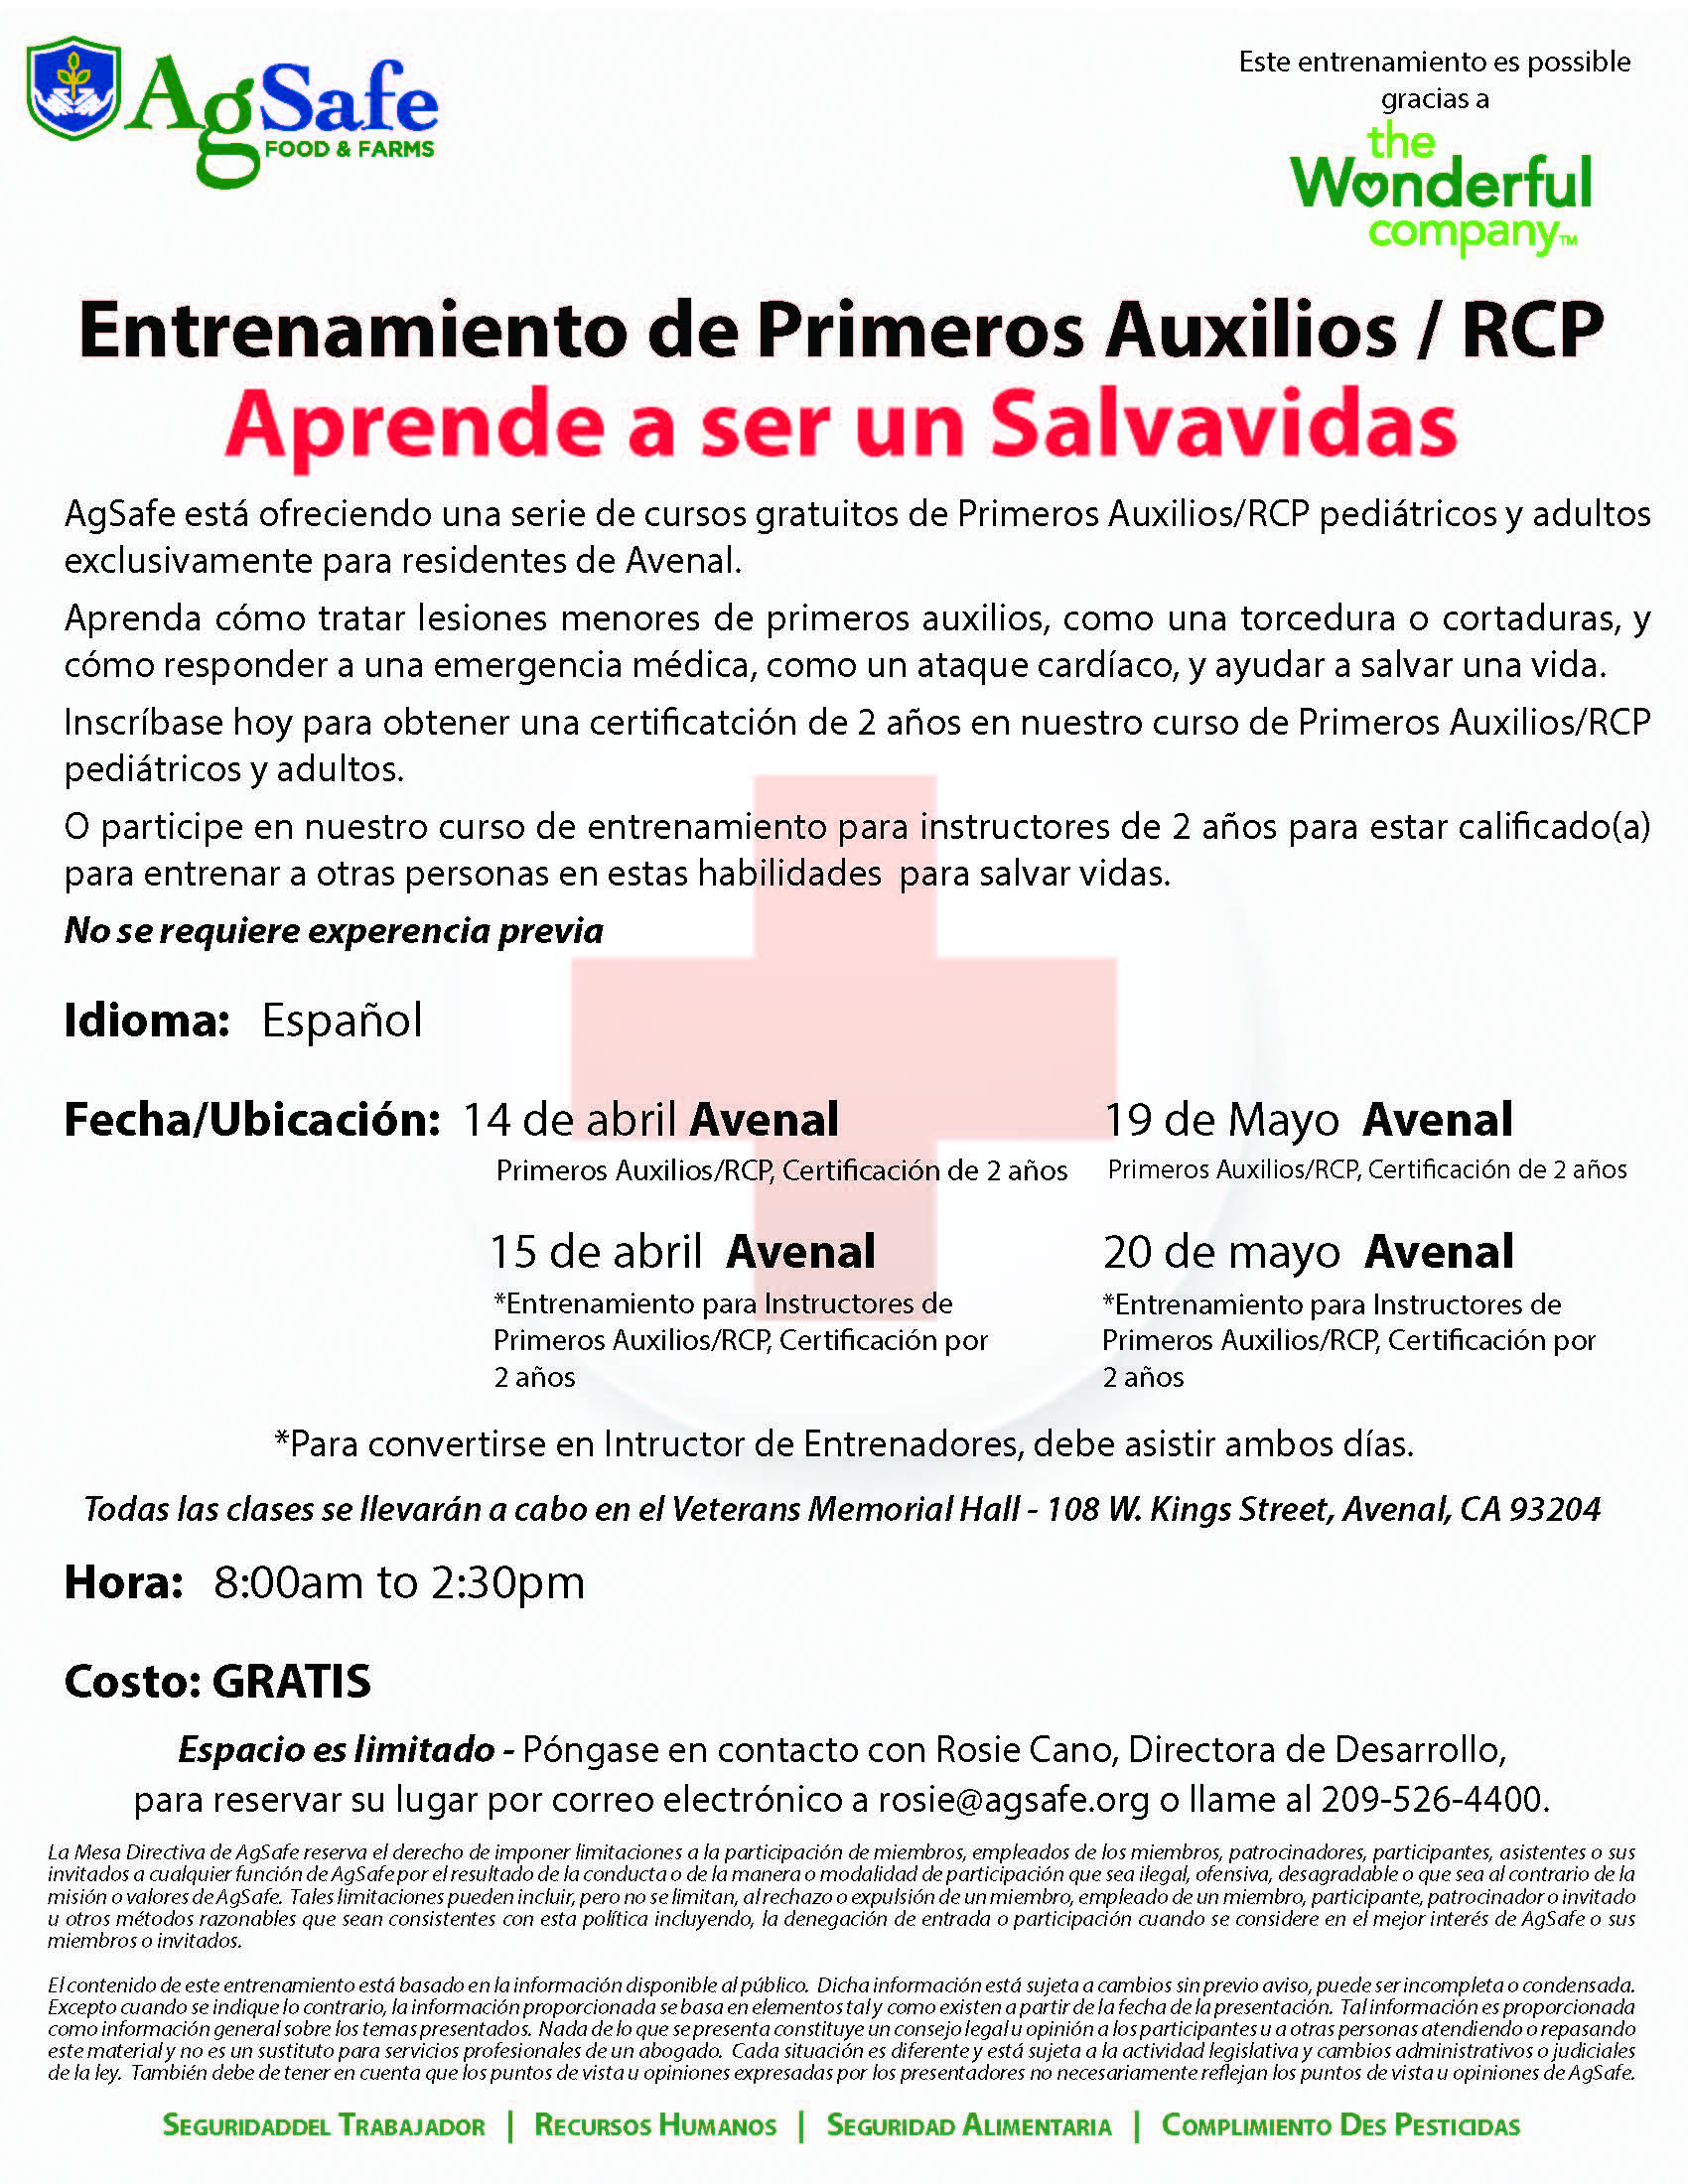 Avenal First Aid Flyer_Spanish